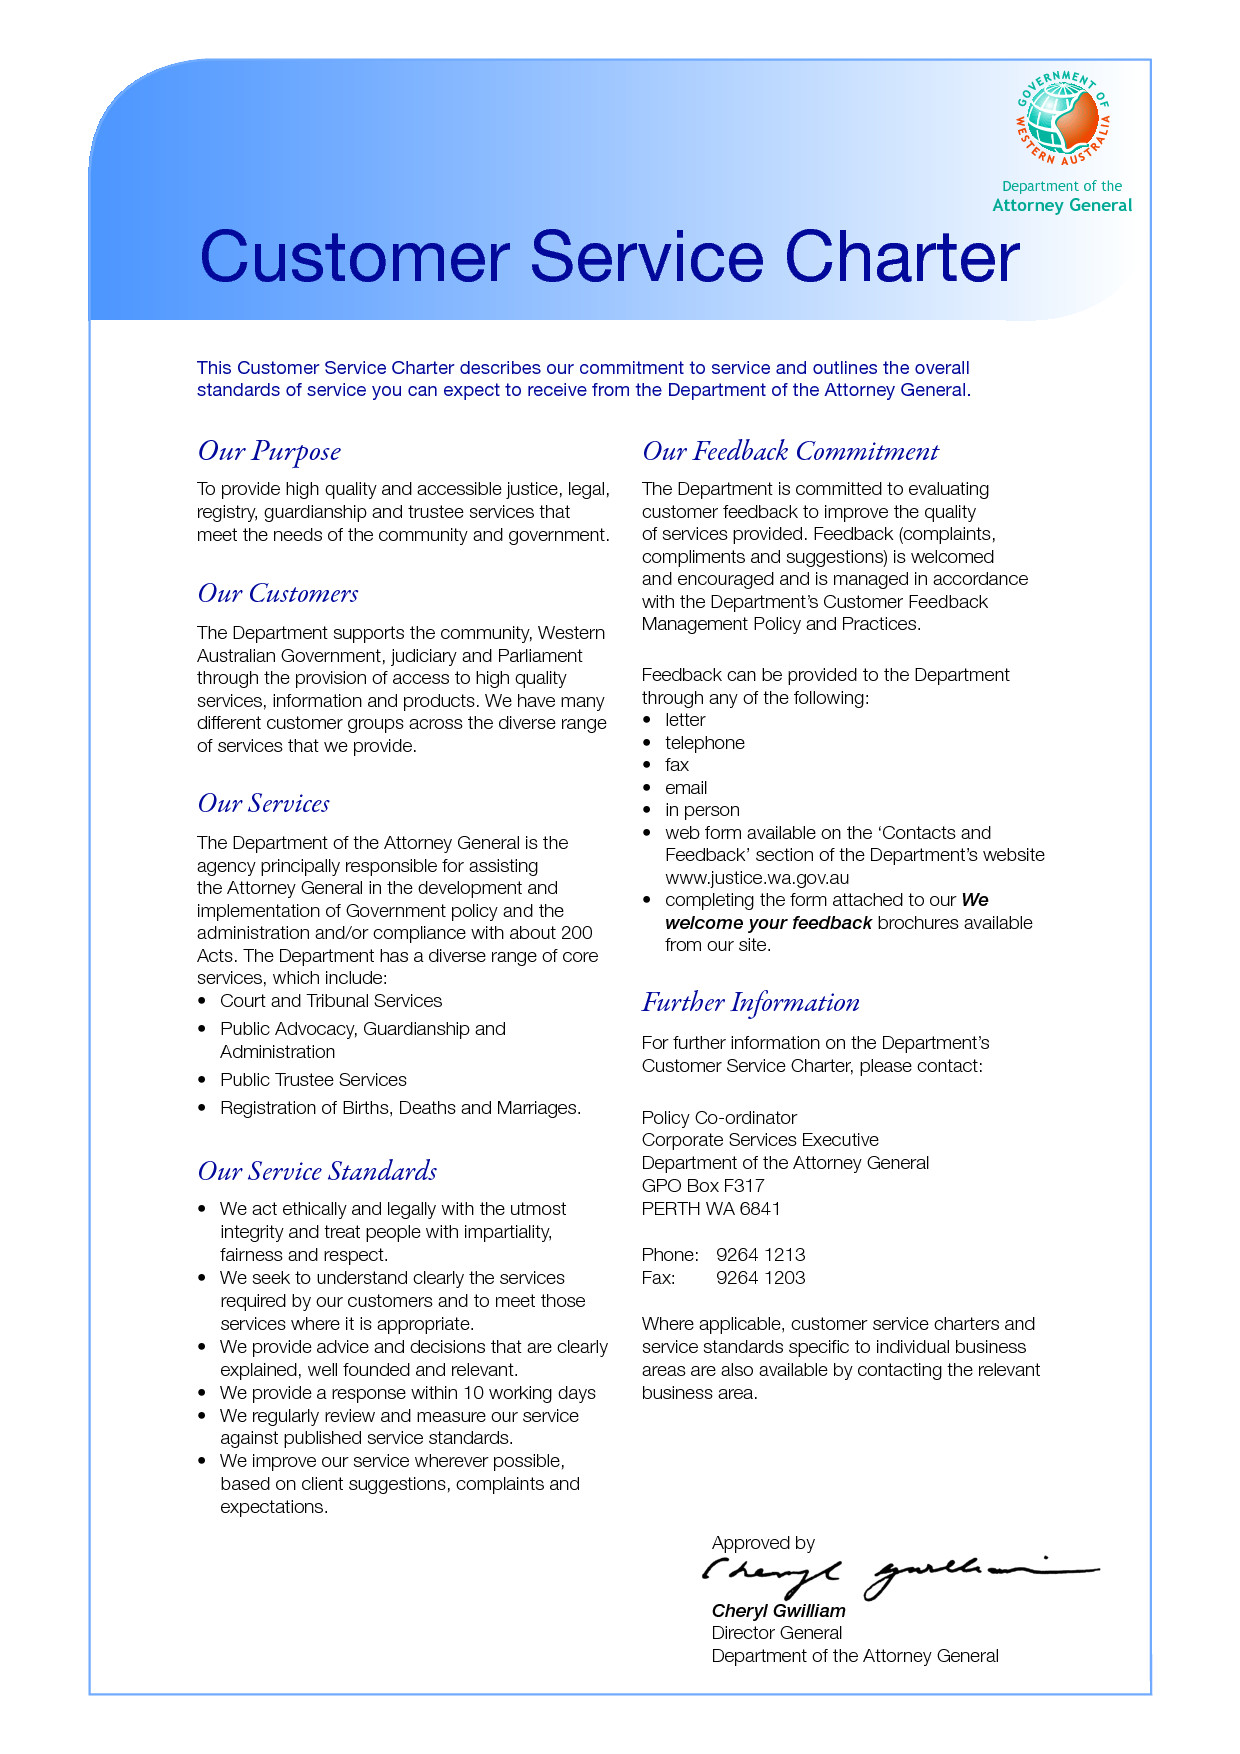 Customer Care Charter Template Best Photos Of Department Charter Templates Name Change